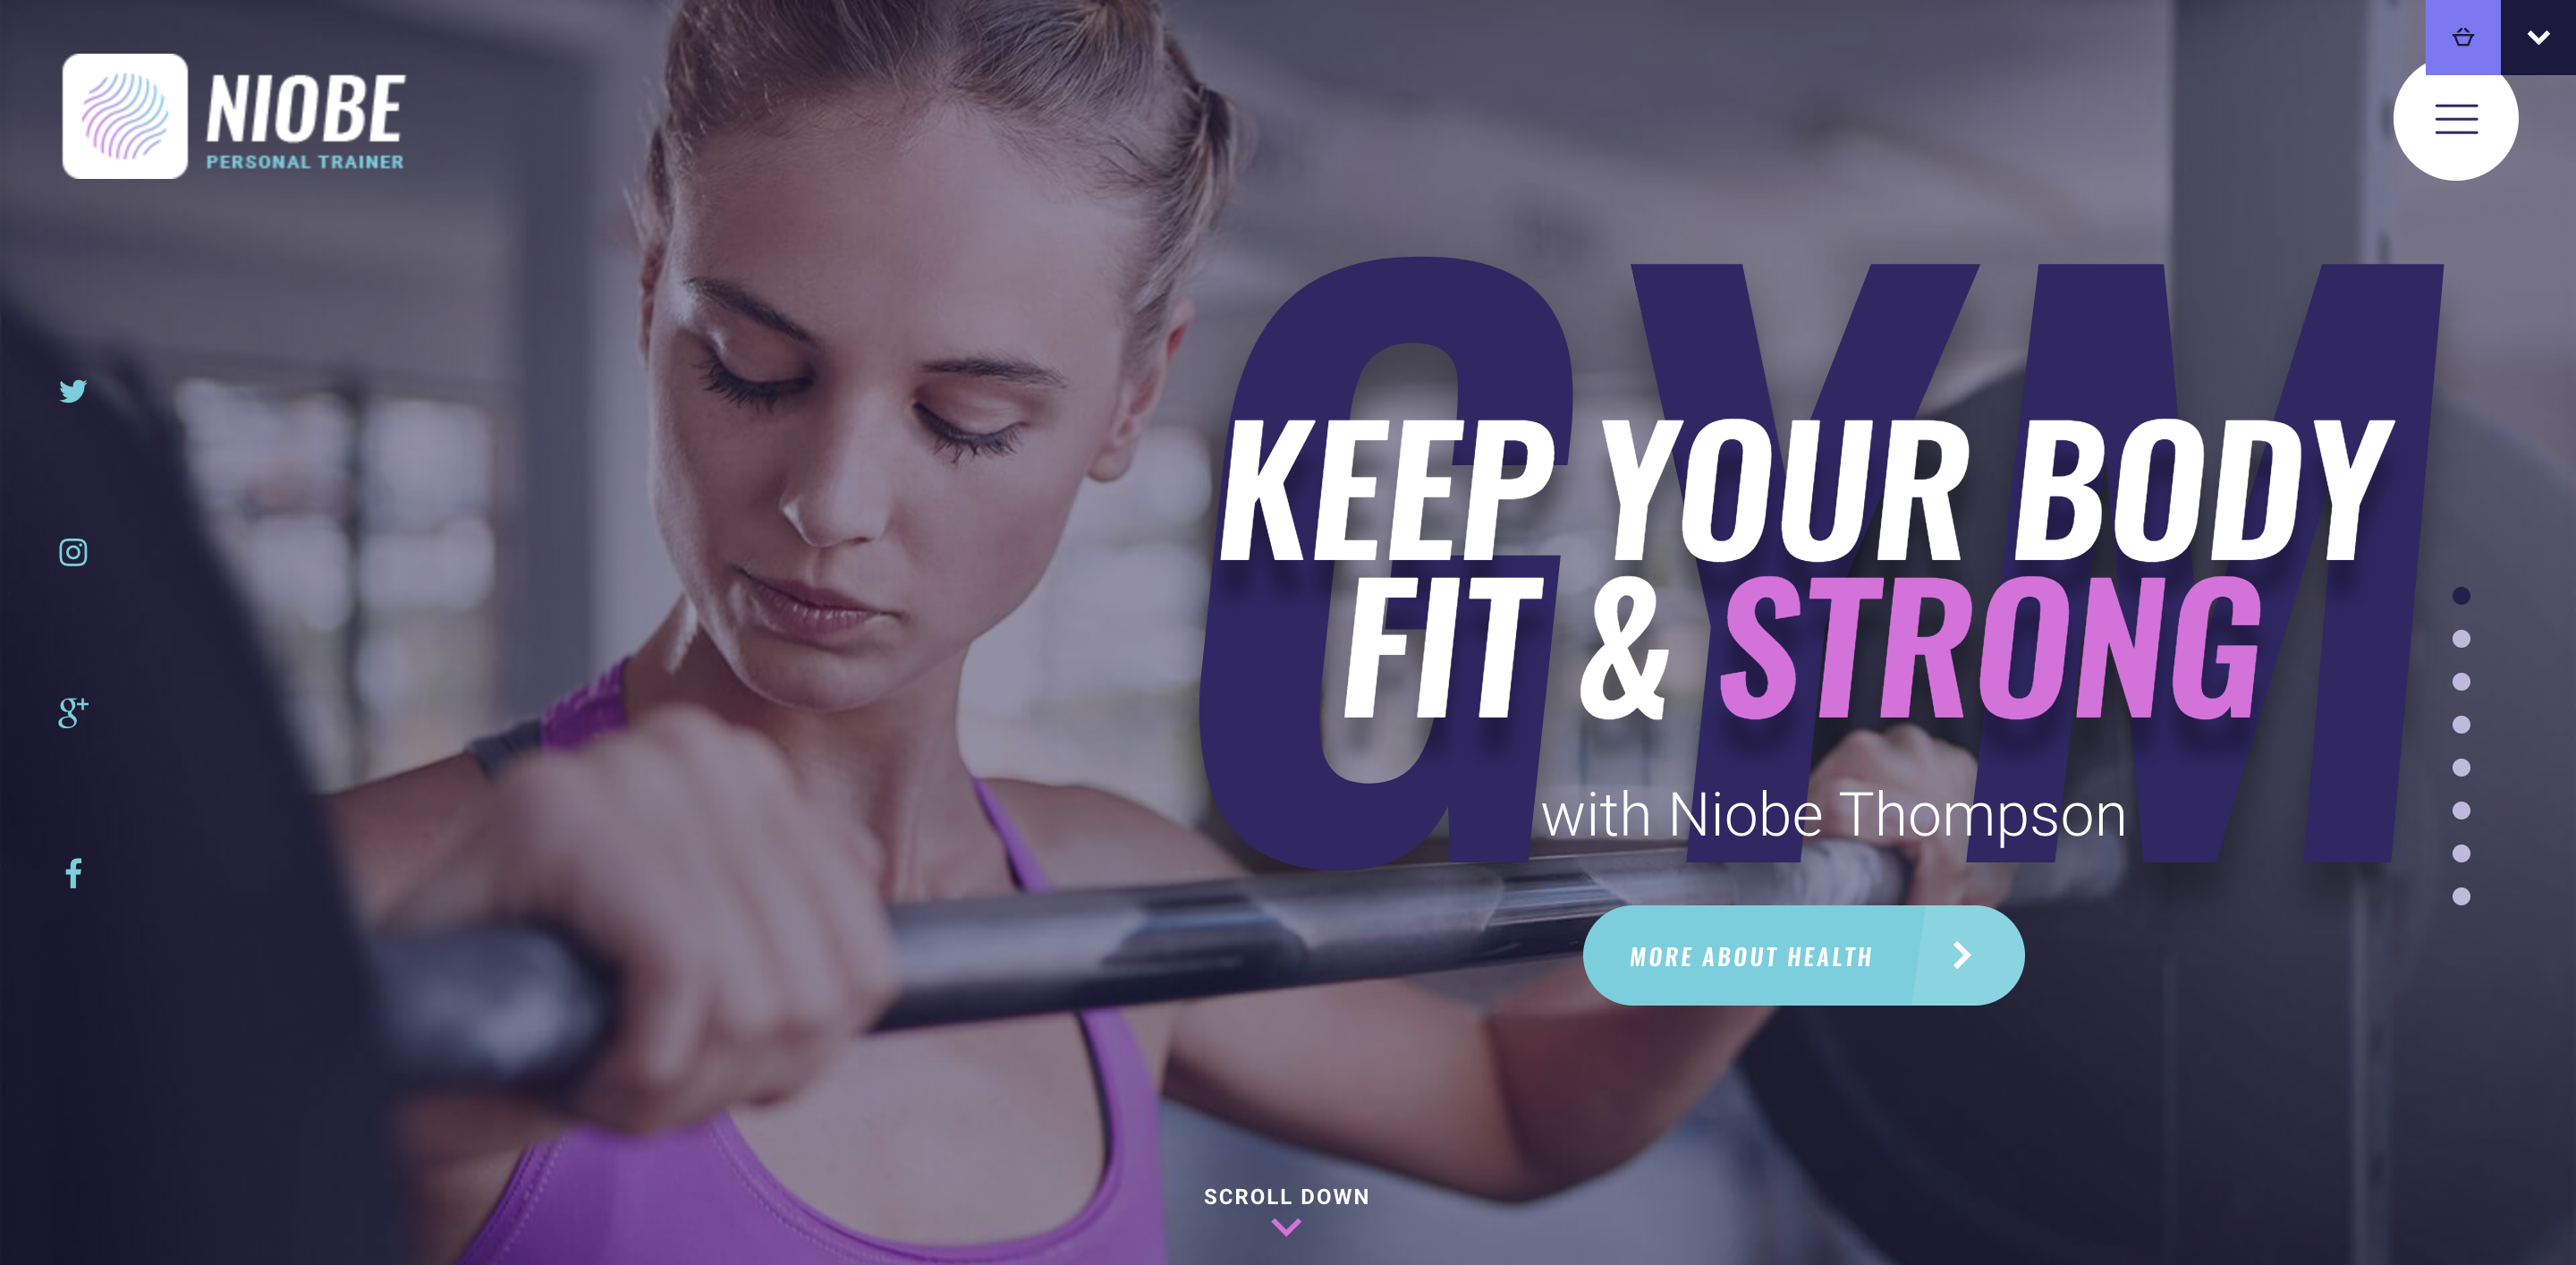 Niobe - Gym Trainer Nutrition Coach WP Theme.png